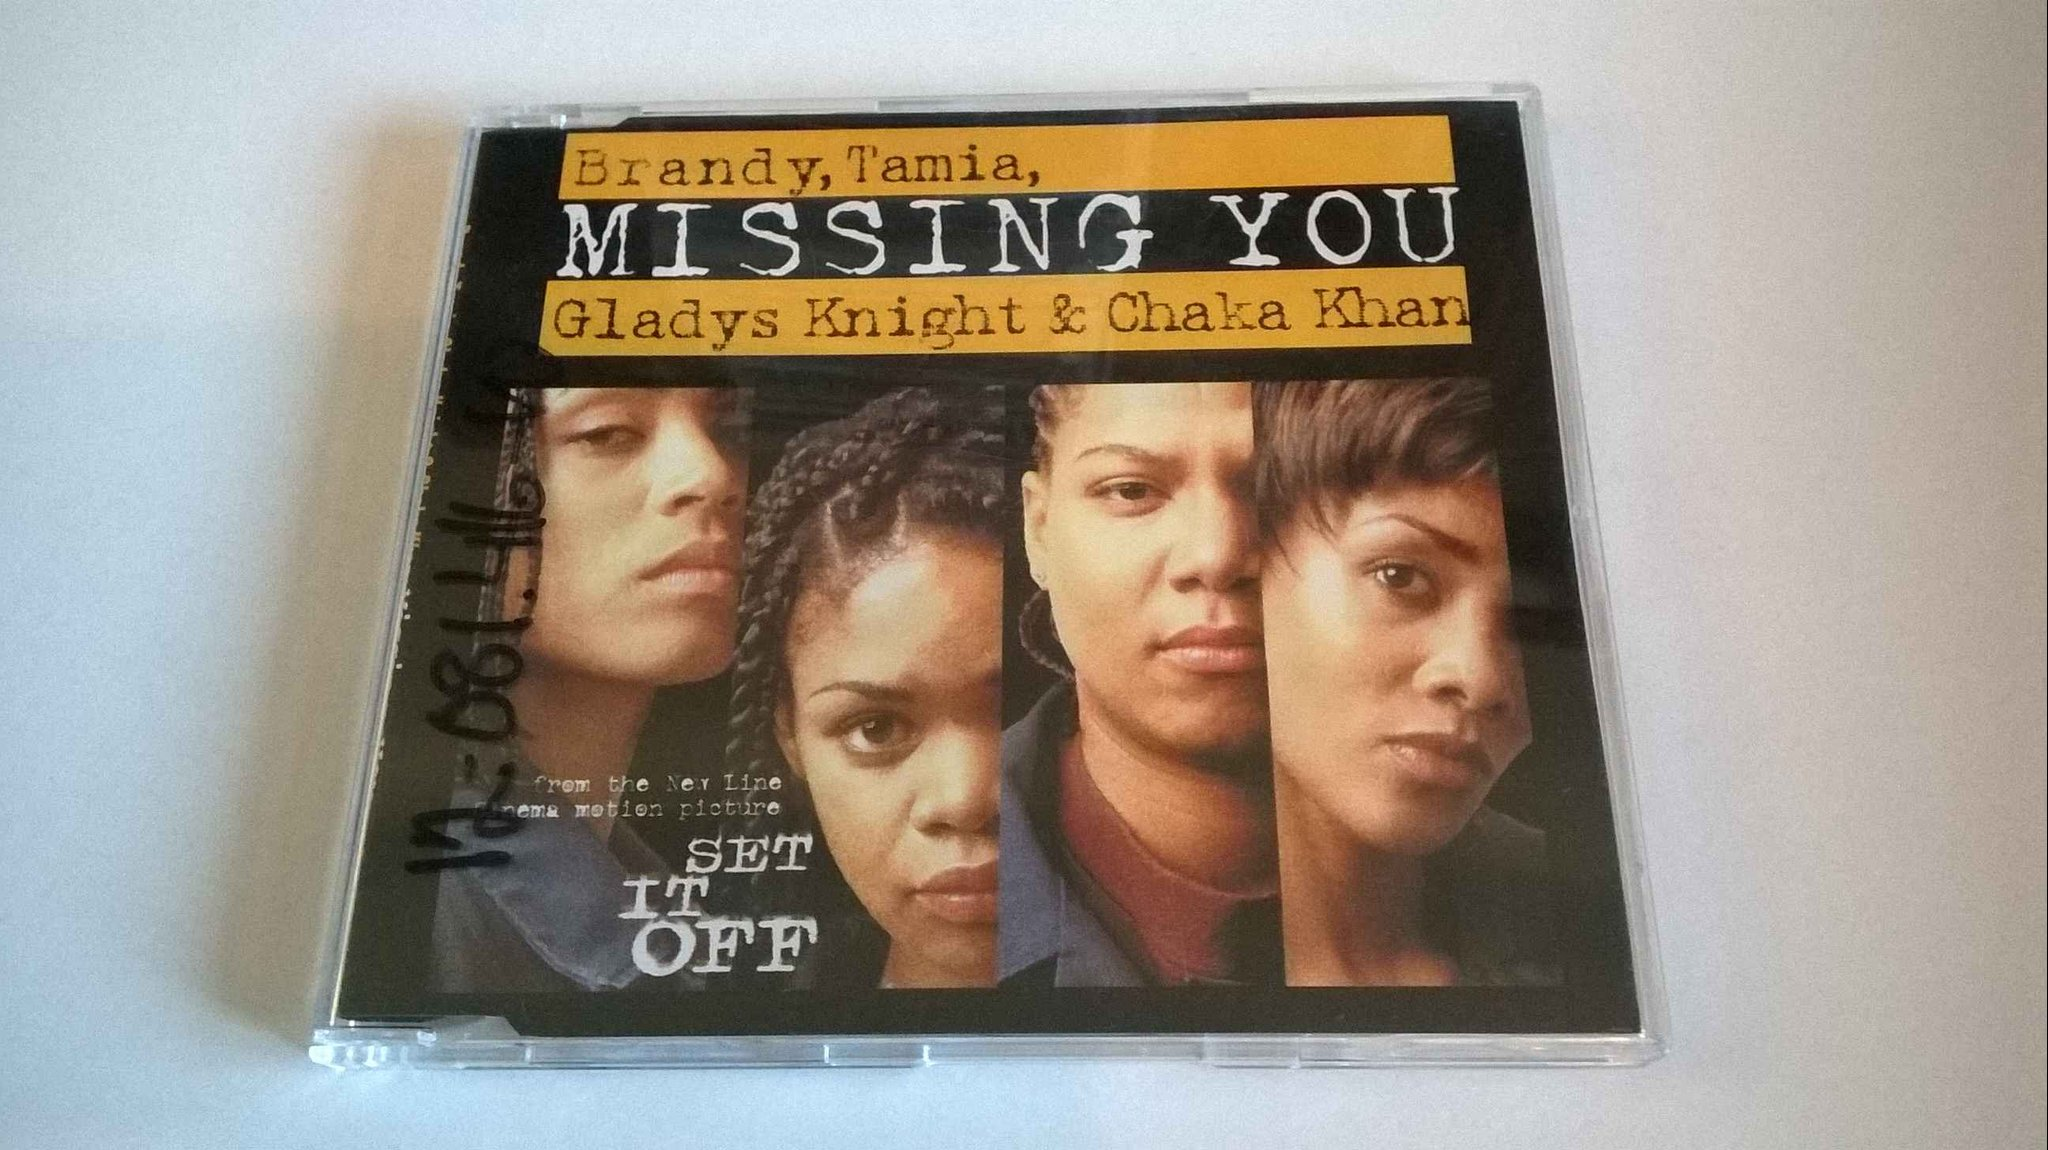 Brandy, Tamia, Chaka Khan & Gladys Knight - Missing you, CD